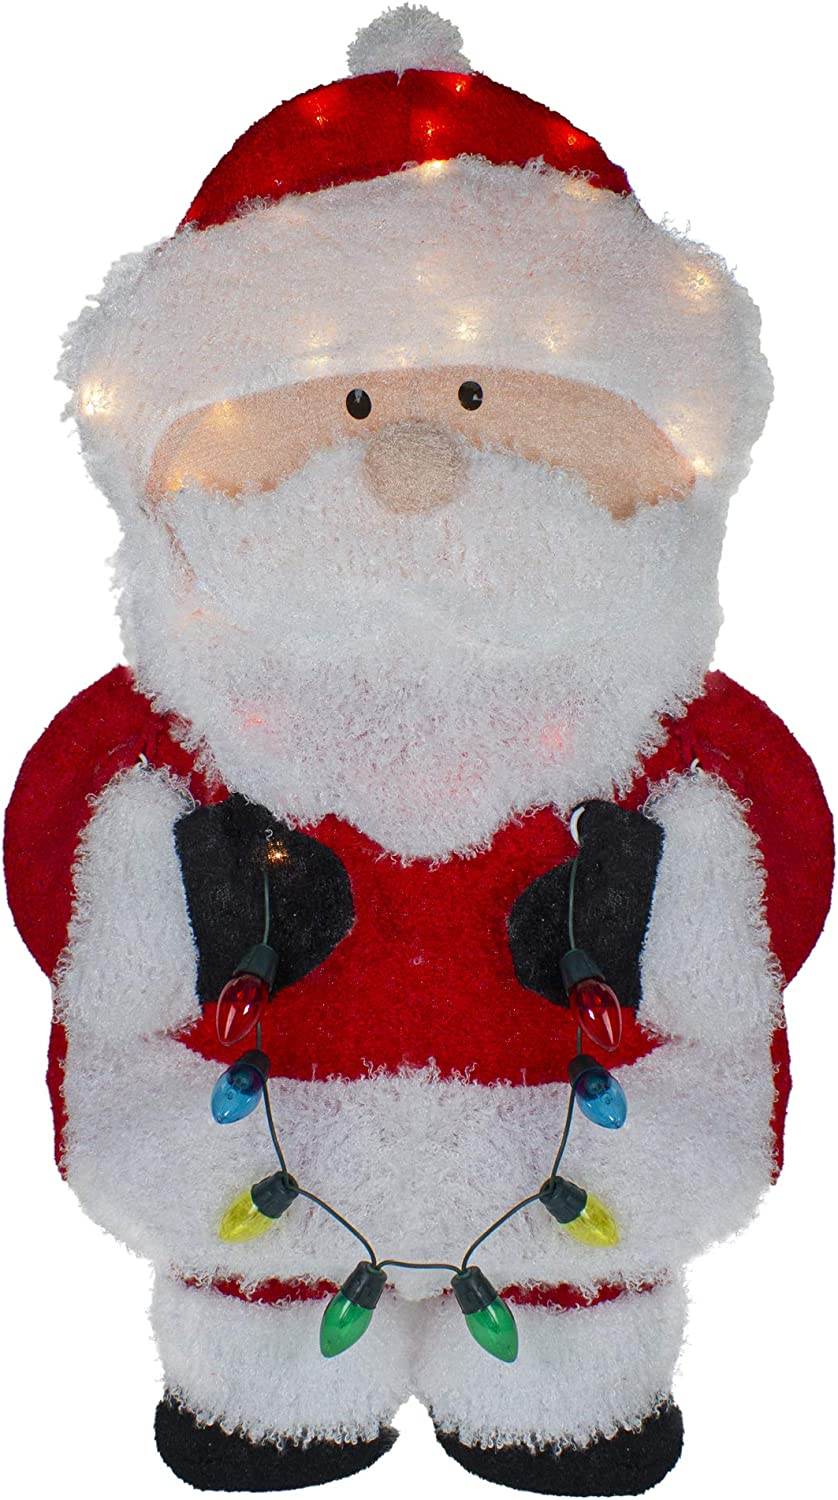 32-Inch Lighted Chenille Same day shipping Santa with Dec Lights SEAL limited product Outdoor Christmas